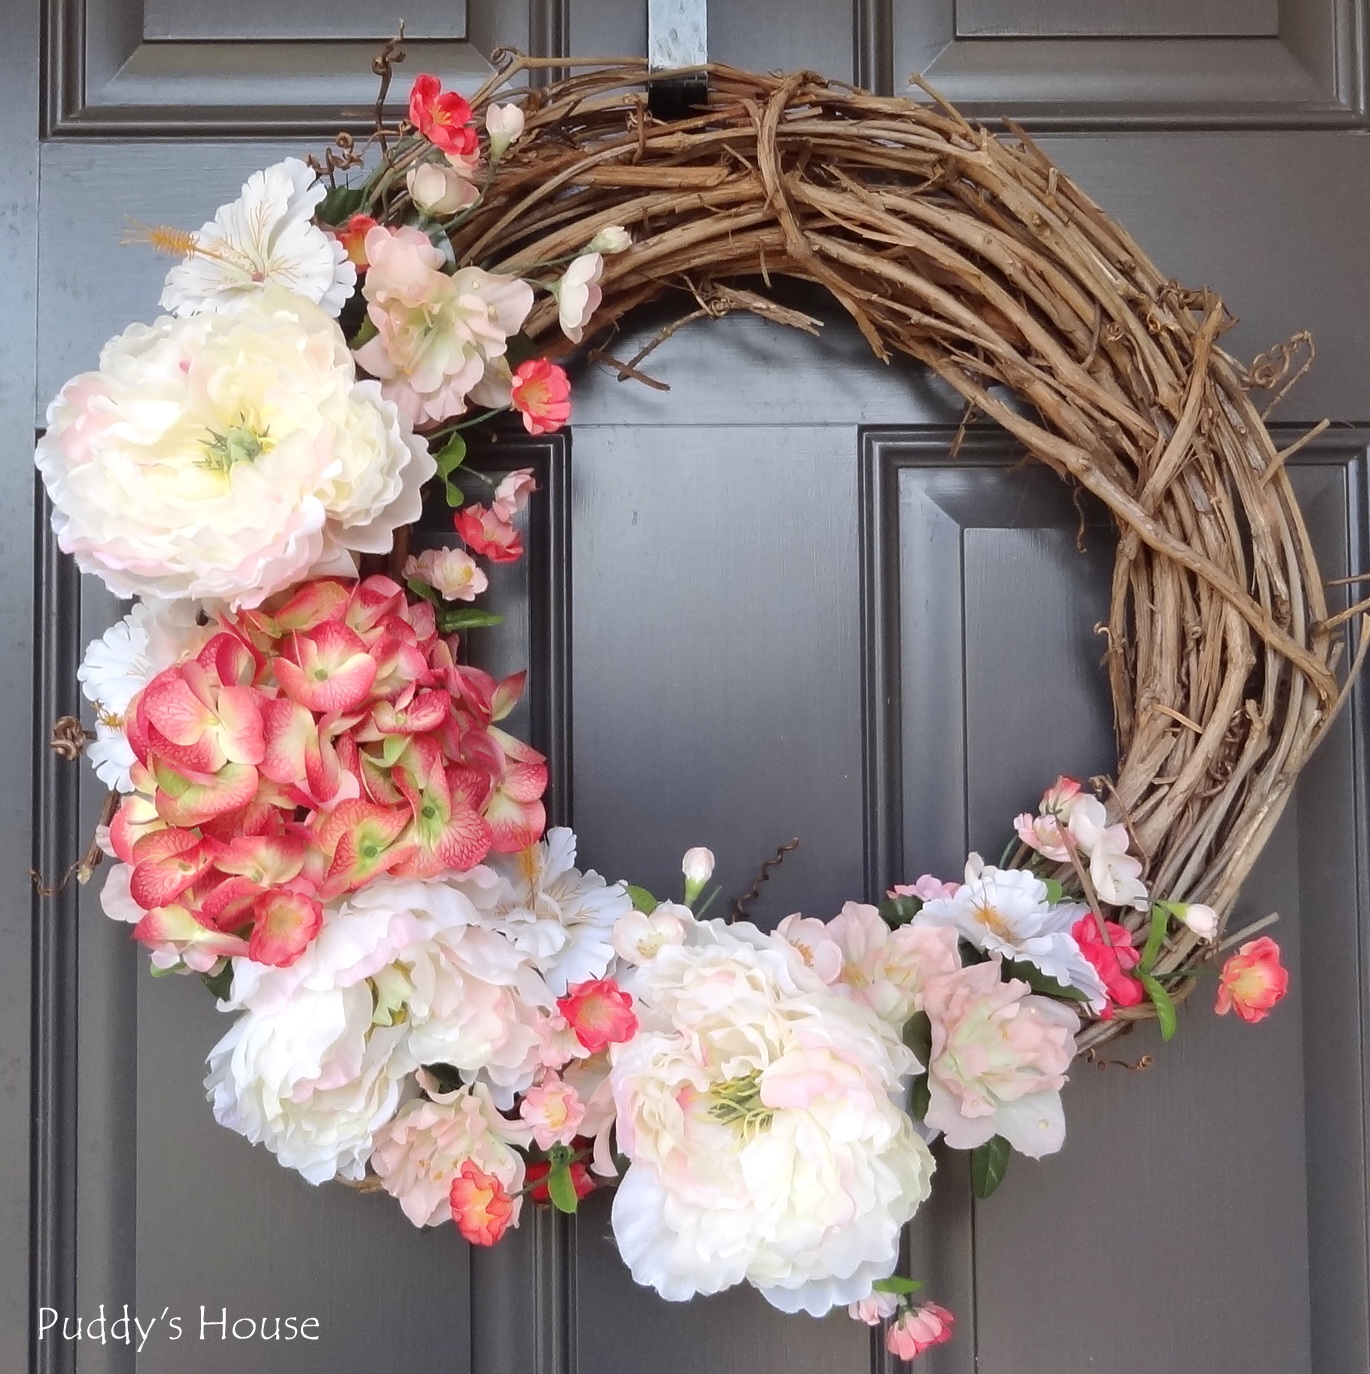 Diy Wreath Supplies 2014 Diy Spring Wreath Puddy 39s House